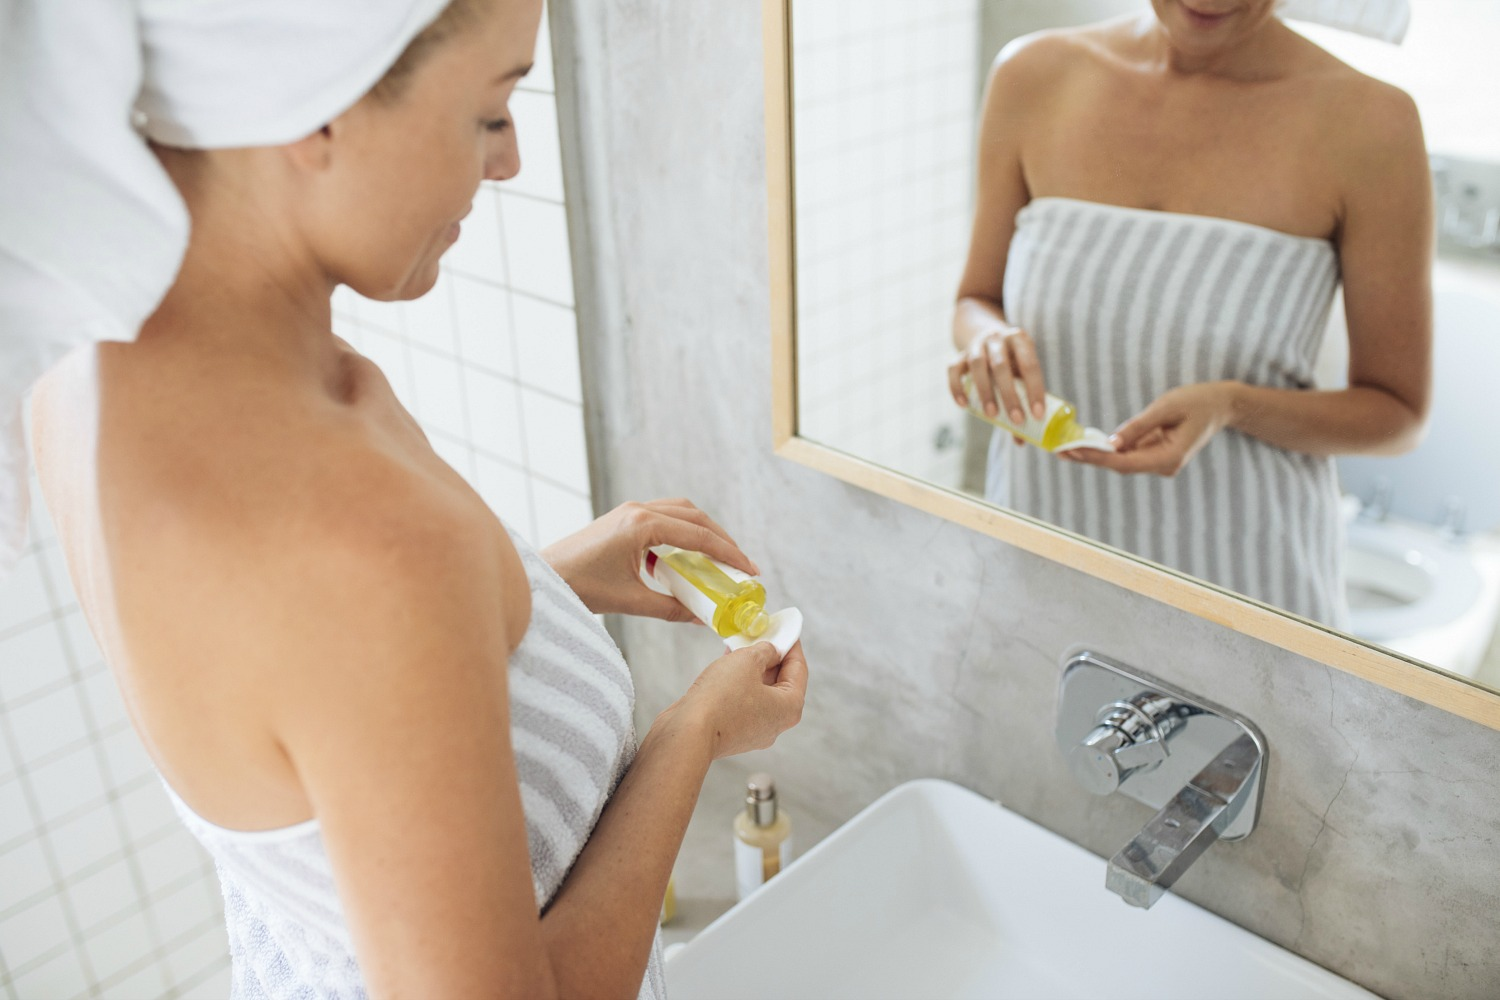 Want The Best Moisturizer For Dry Skin? Here's How To Hydrate Severely Dry Skin + The Best Body Oil For Dry Skin Issues